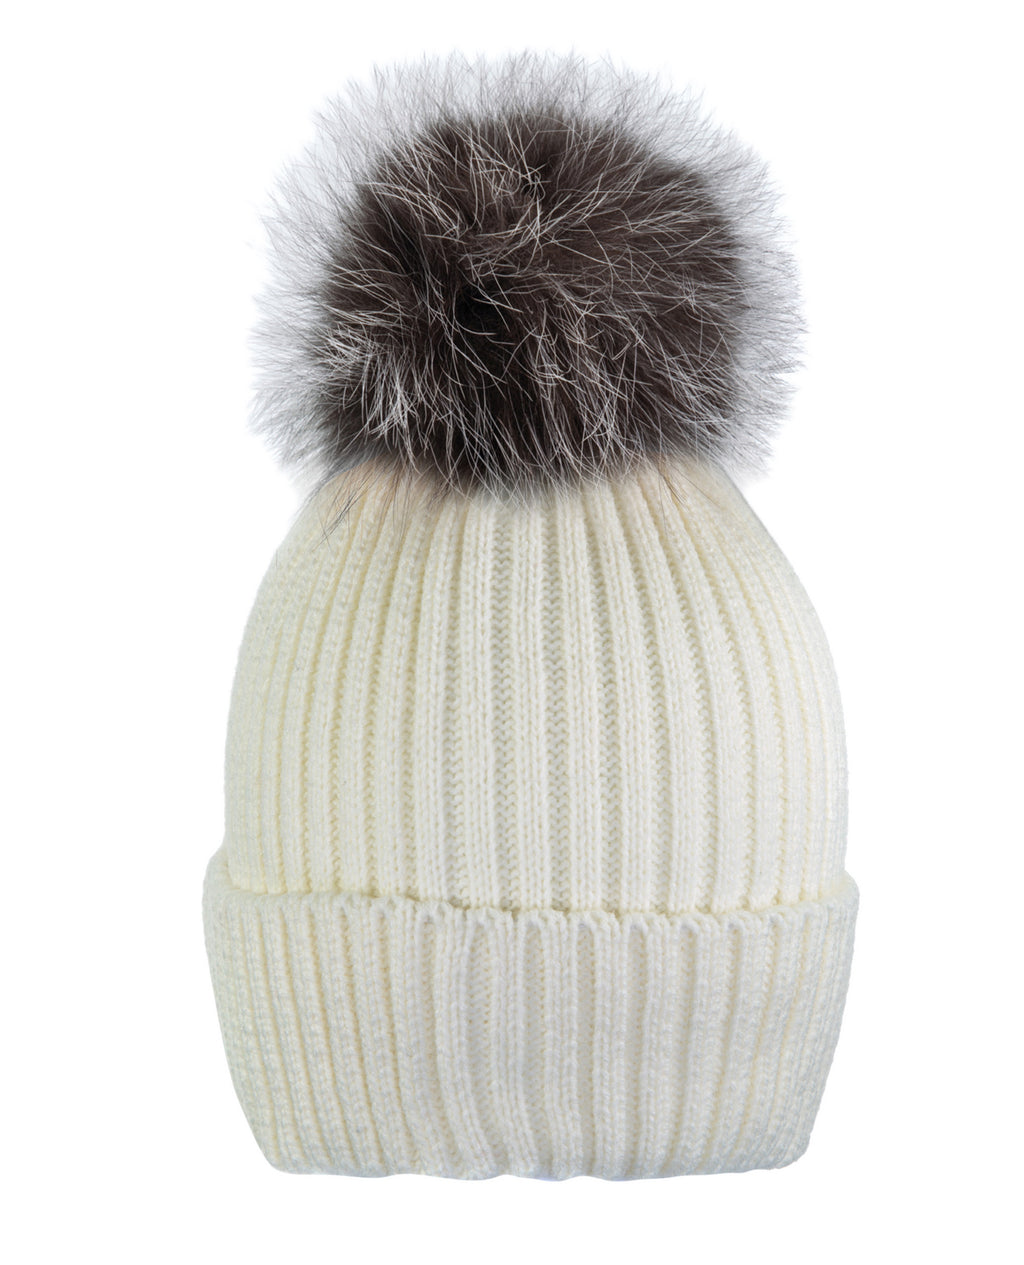 Cream White/Brown Beanie Hat With Exclusive Pom Pom